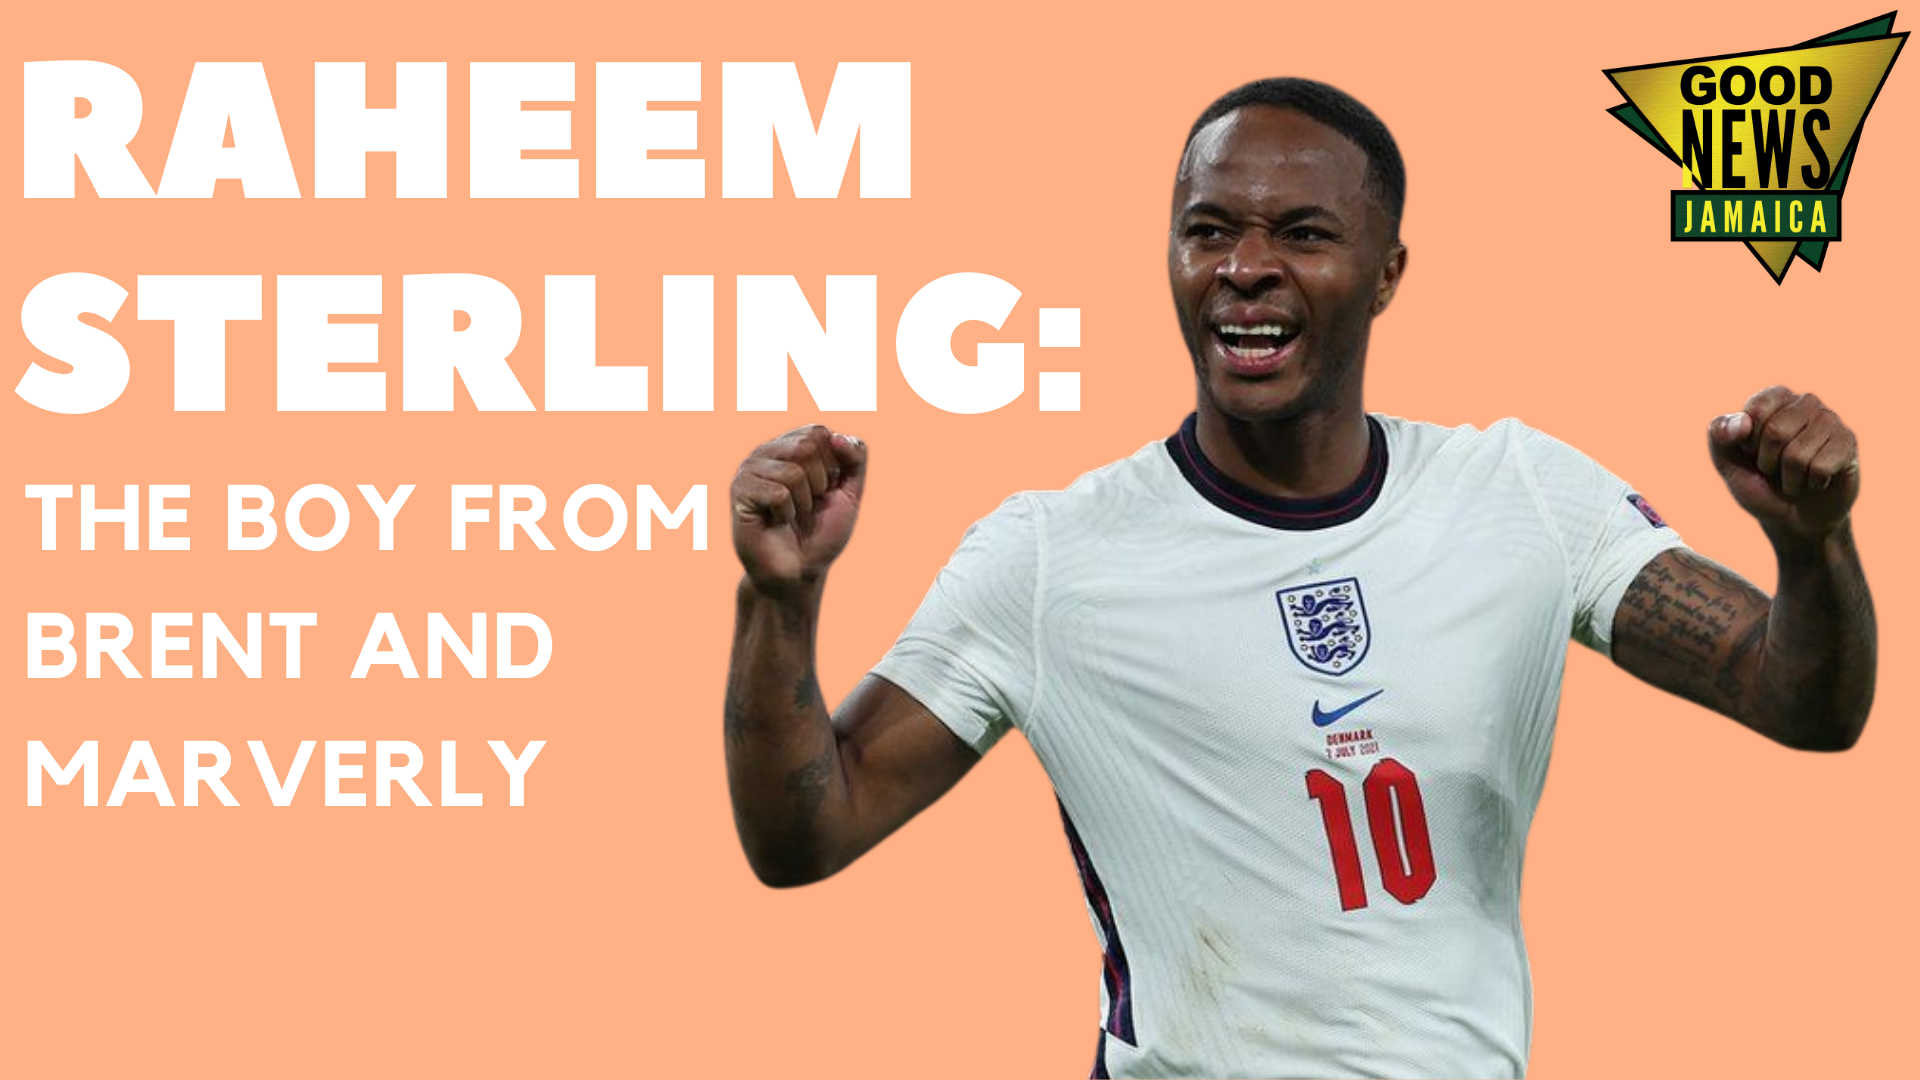 Raheem Sterling – The Boy from Brent and Marverley